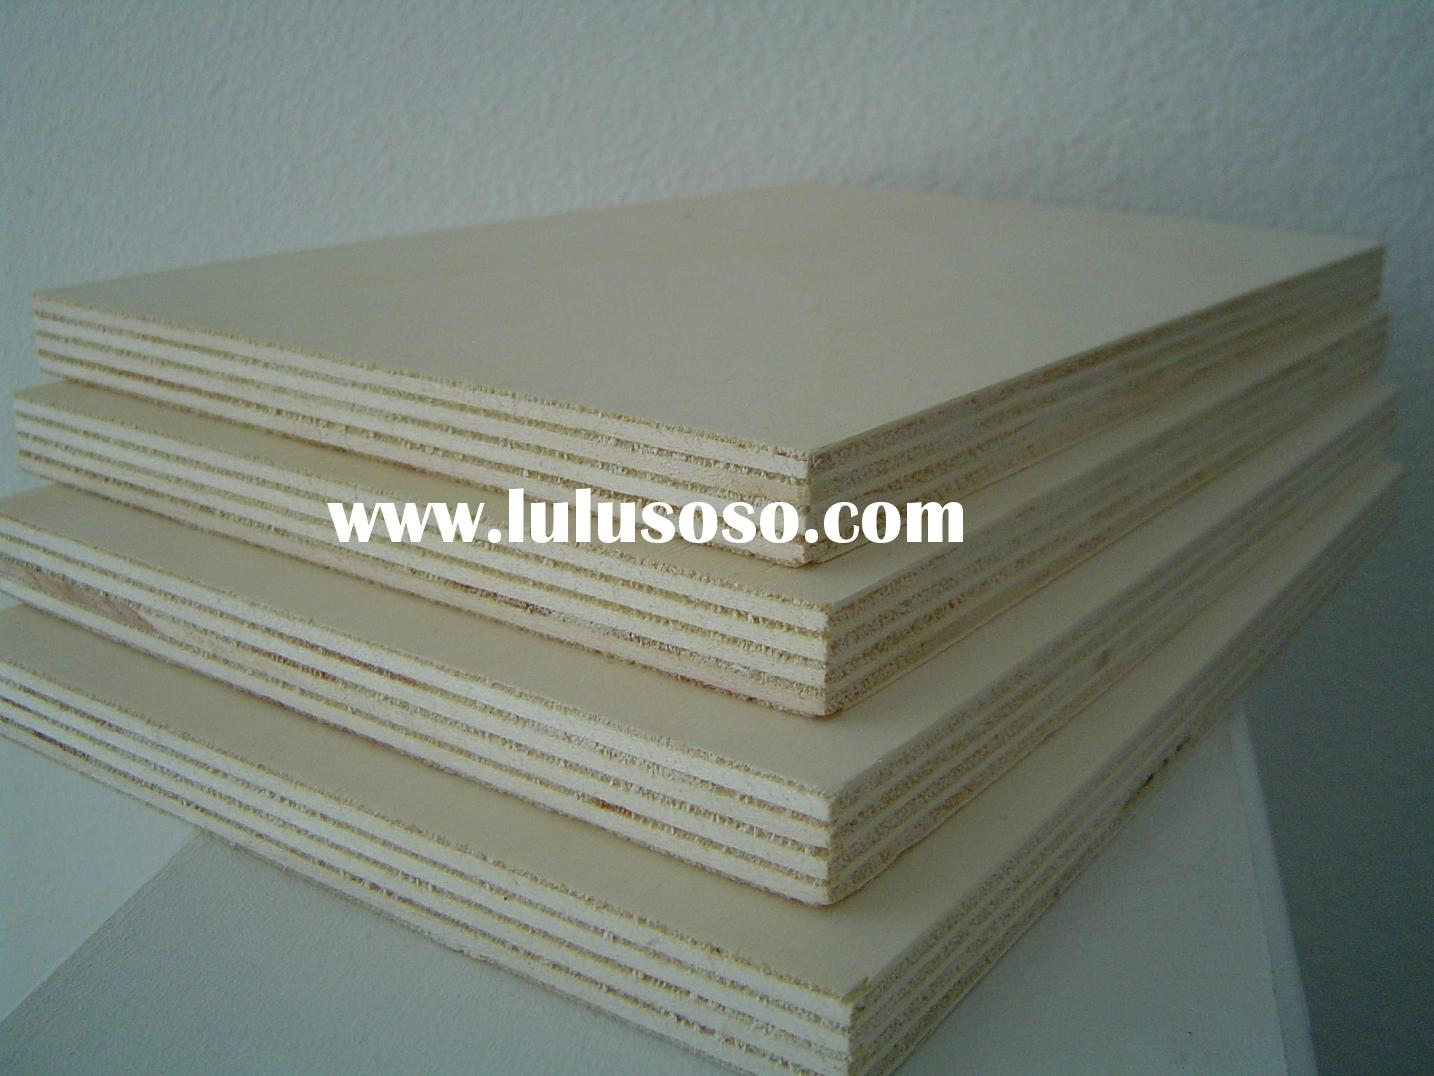 Httpsdie2nitewiki Com1 4 Inch Birch Plywood Underlayment: Wood And Pvc Panel/pvc Laminated Wall Panel For Sale